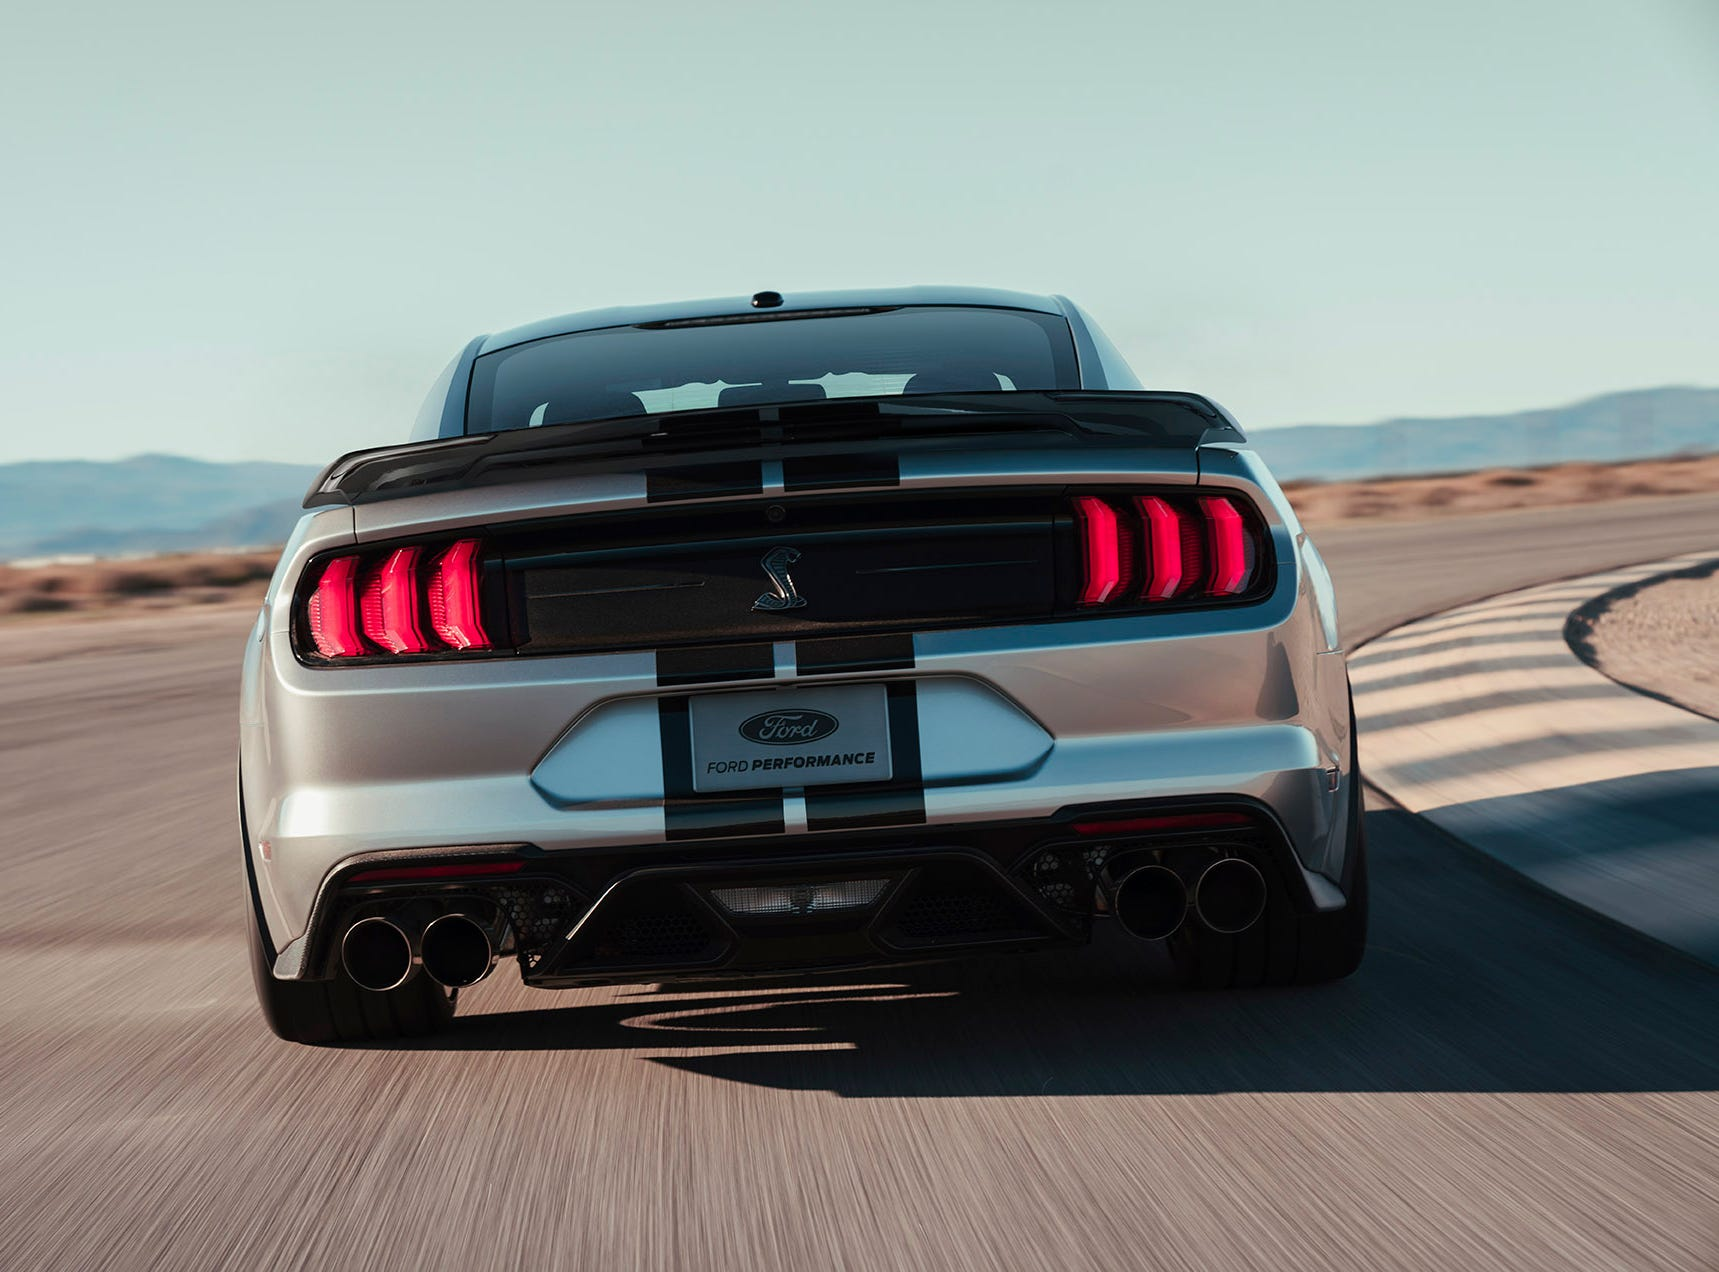 The all-new Shelby GT500 — the pinnacle of any pony car ever engineered by Ford Performance.